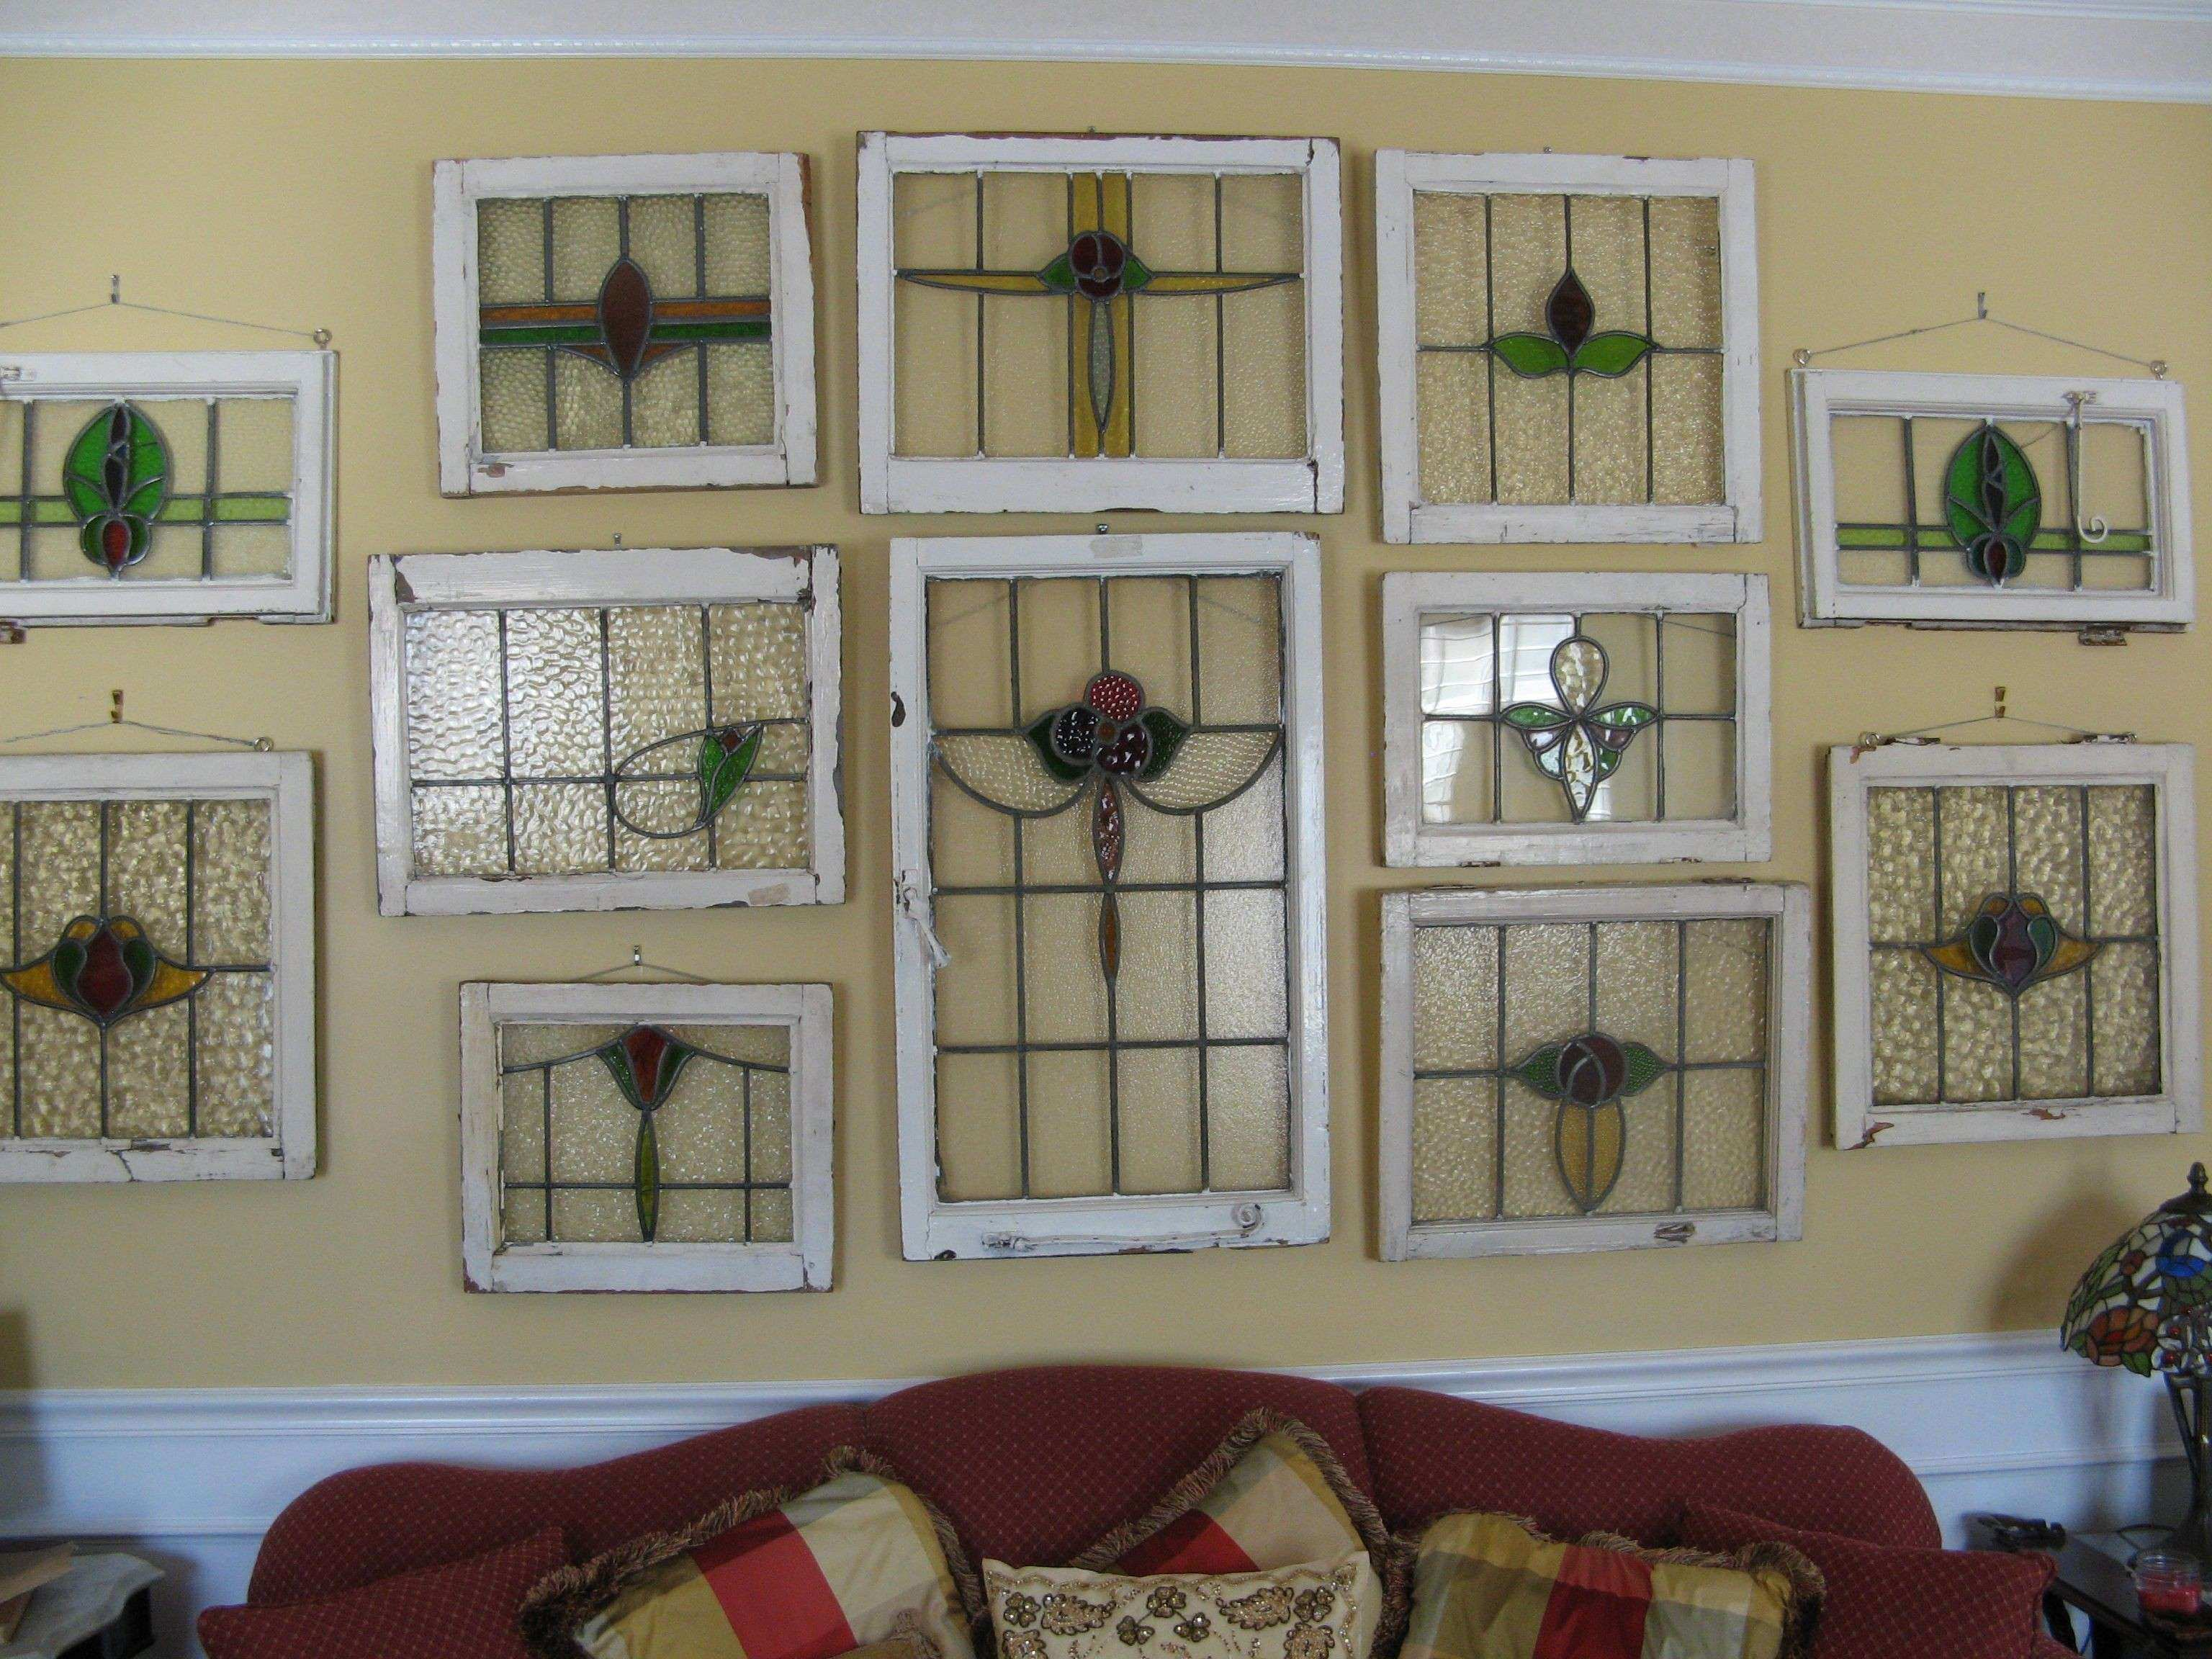 Living Room stained glass windows in a wall grouping